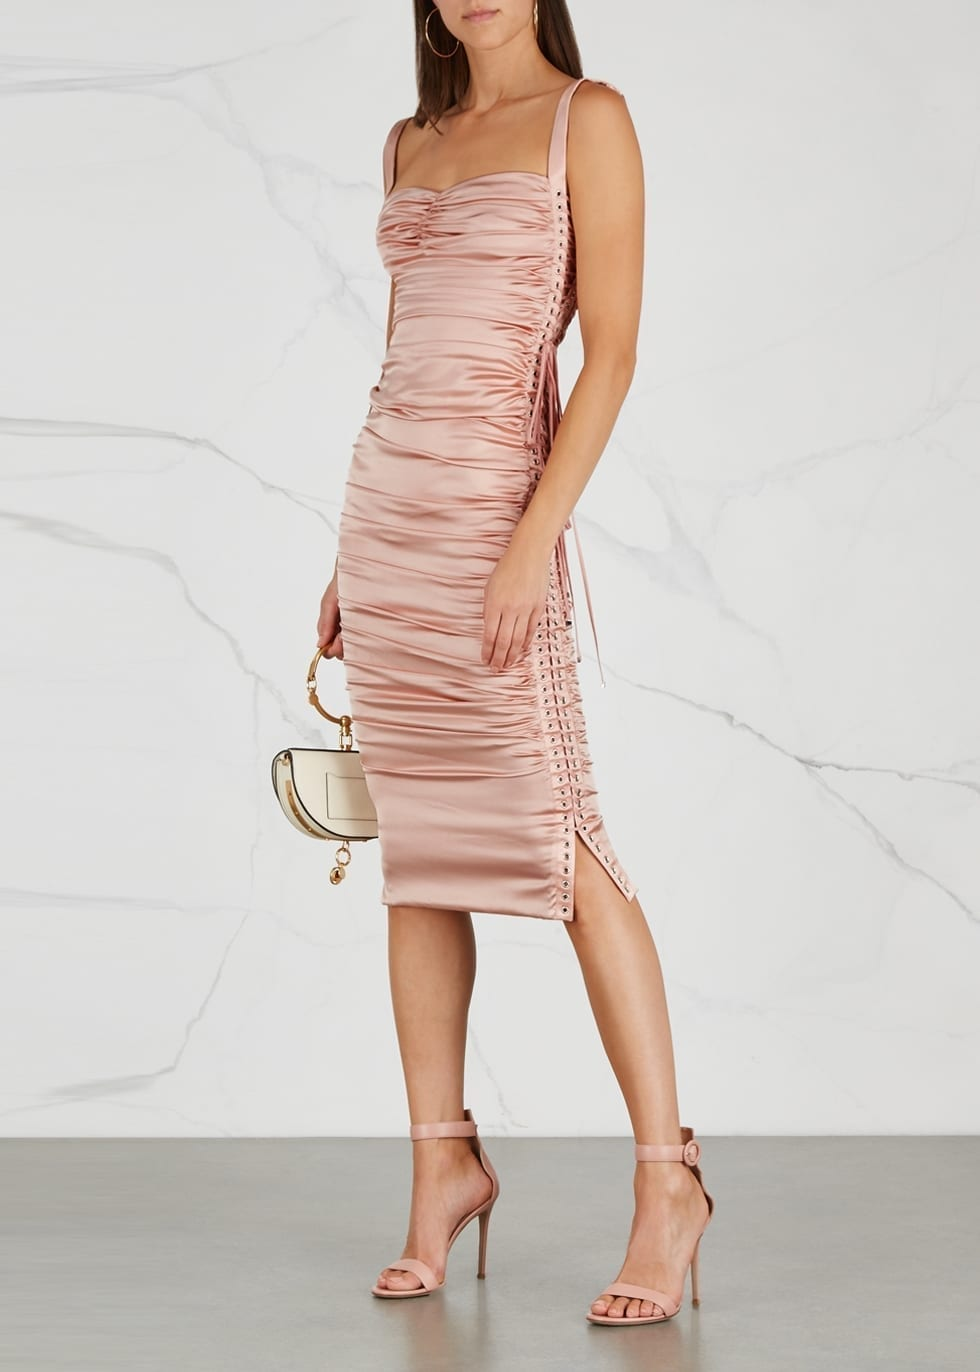 Dresses For Wedding Guest